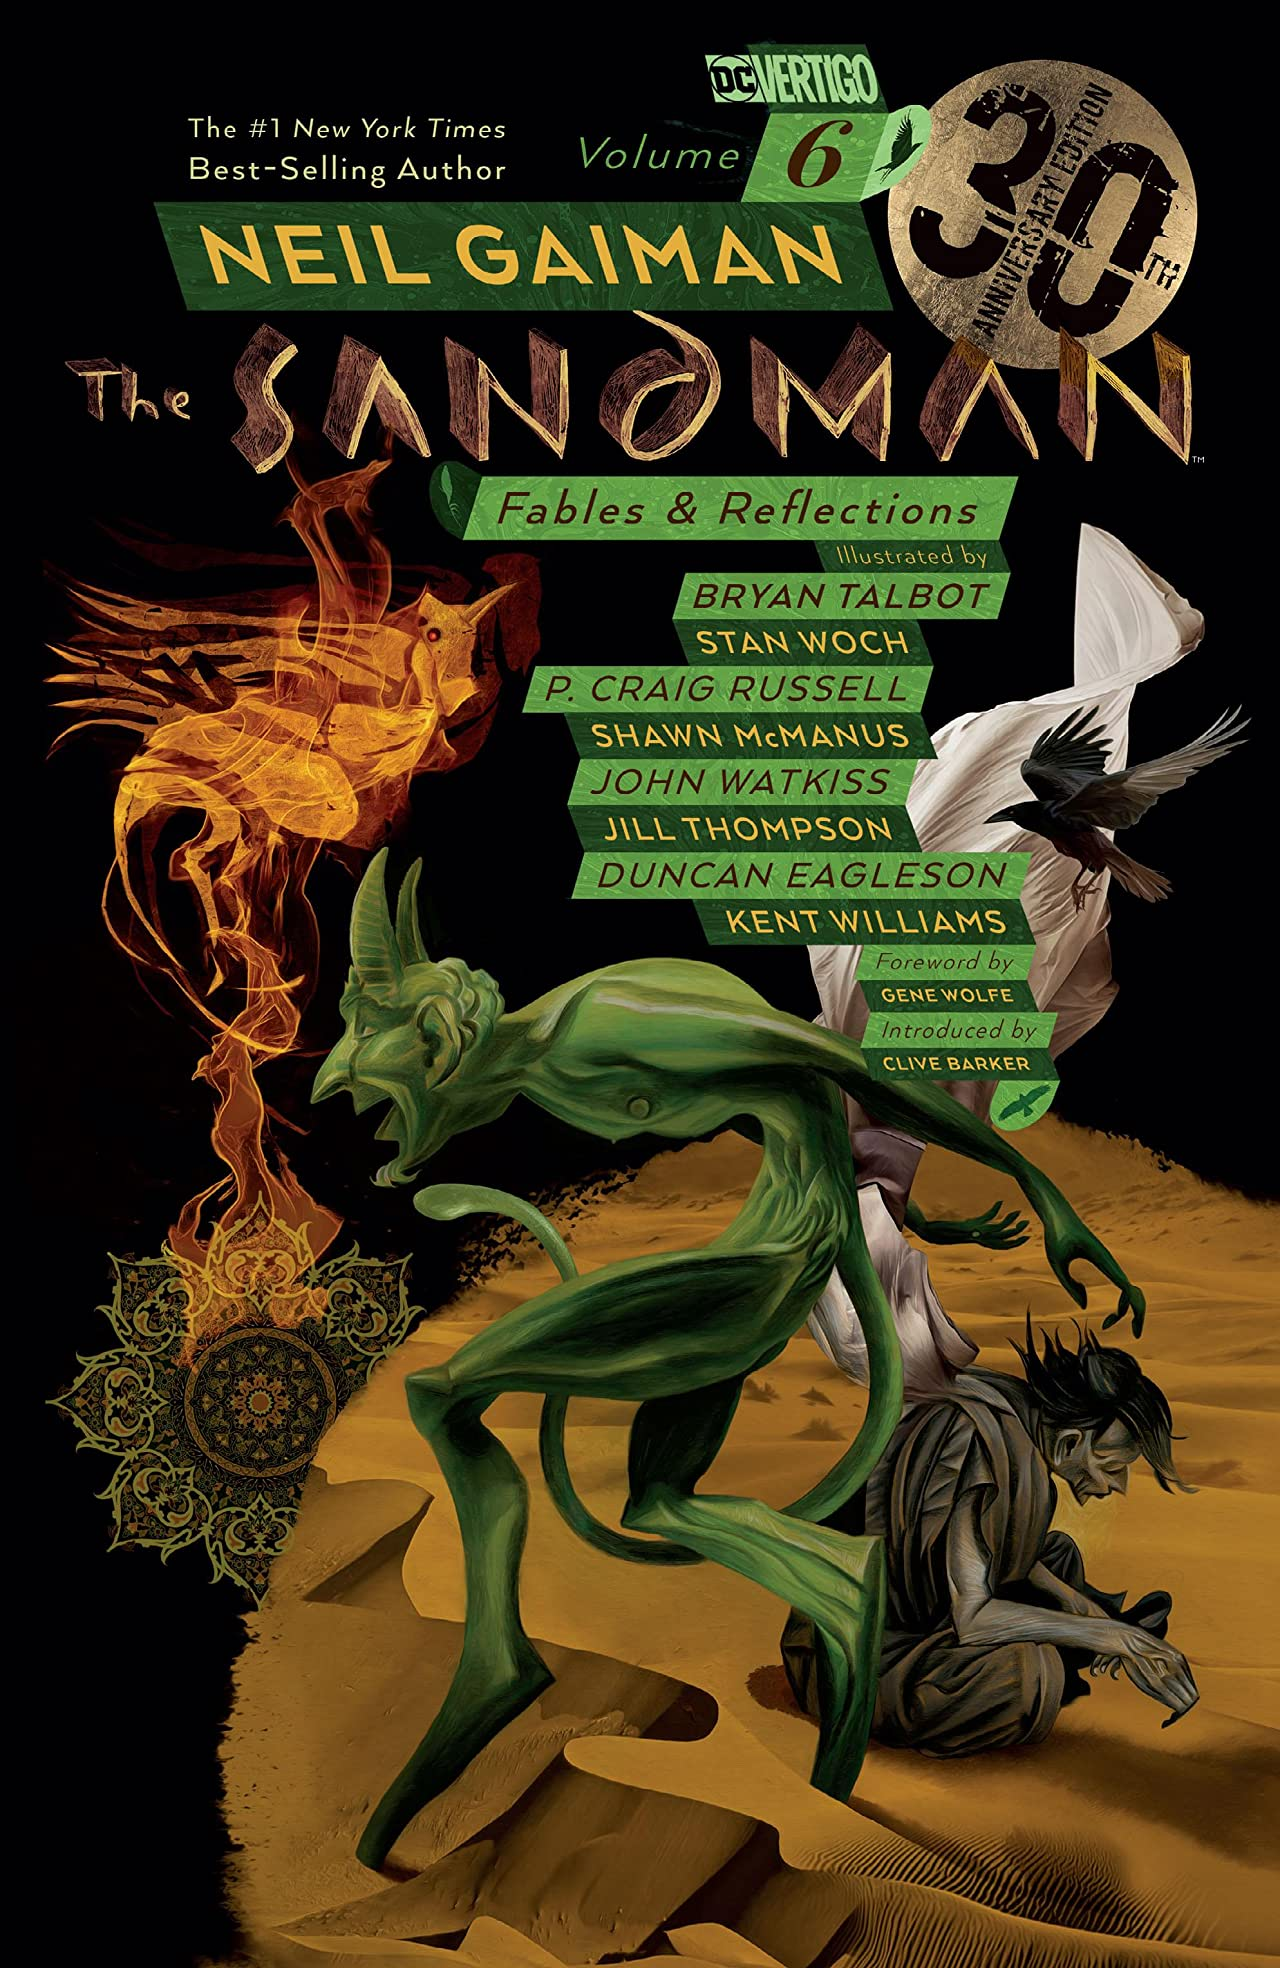 The Sandman, Vol. 6: Fables & Reflections - 30th Anniversary Edition by Neil Gaiman